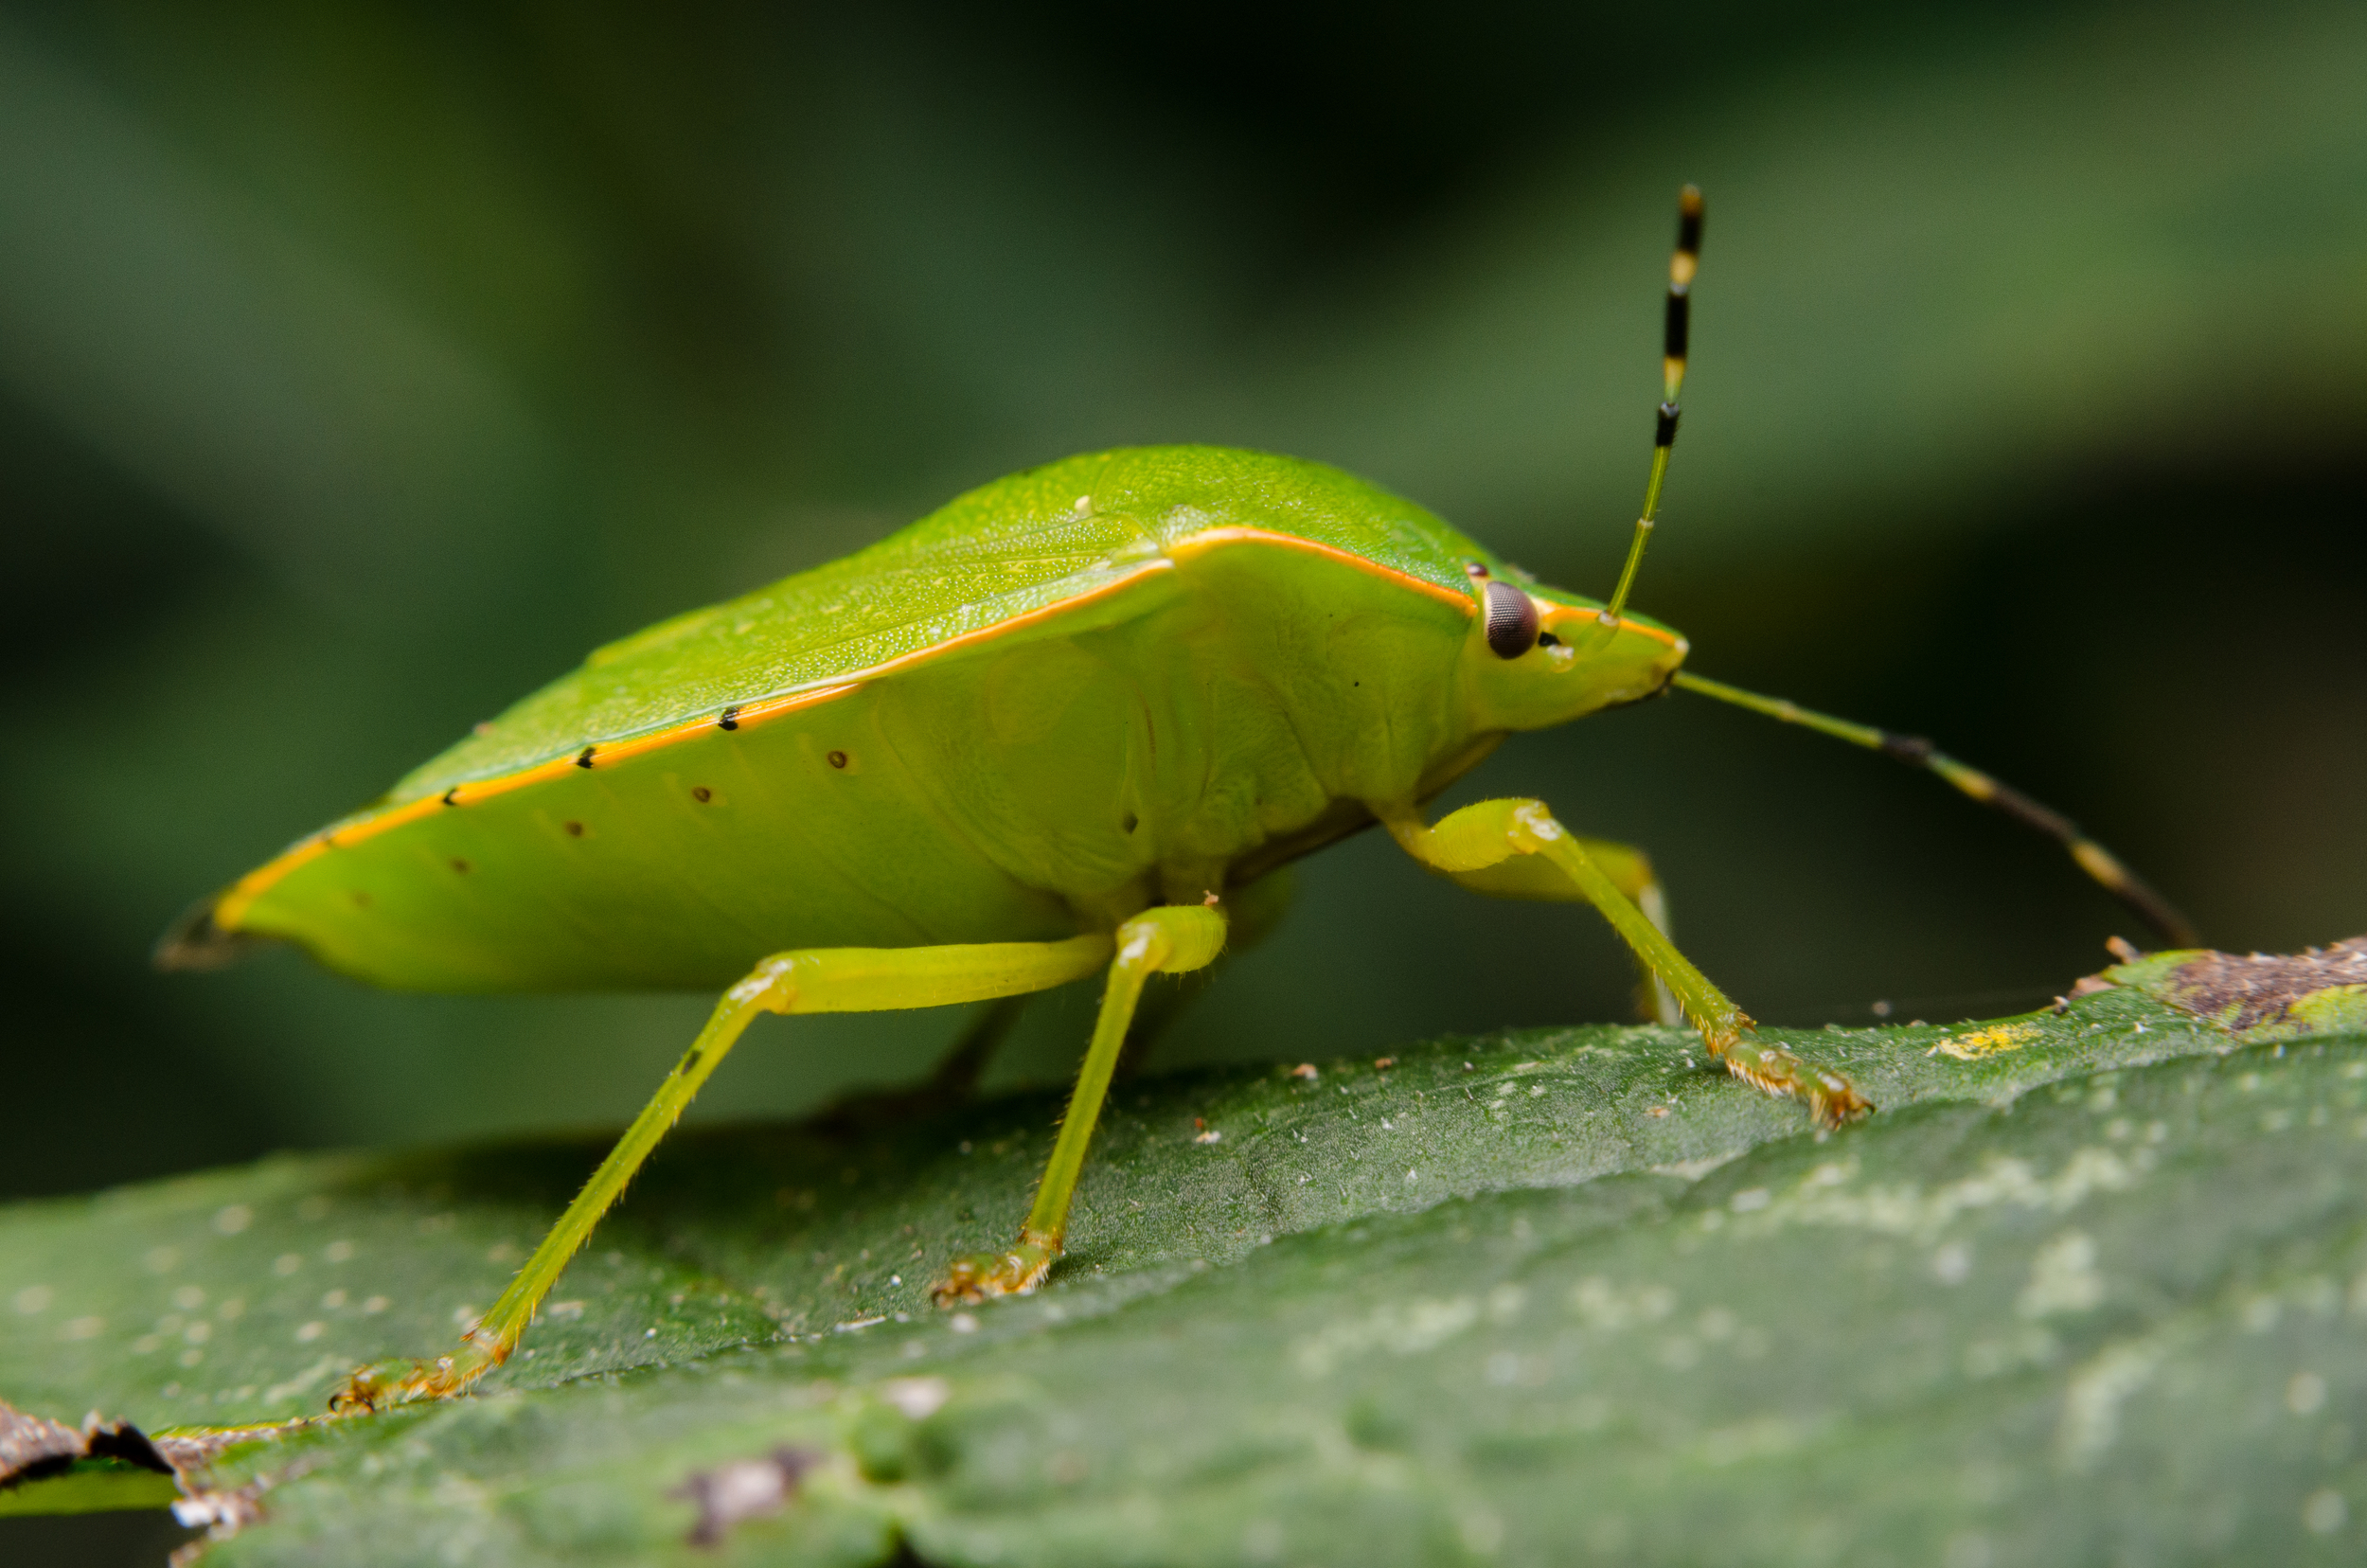 Green Shield (or Stink) Bug -Chinavia Hilaris Nikon D7000 ISO 320 f/11 1/80 sec. sec. Nikkor 50mm f/1.4 reversed with BR-2 Reversing Ring plus a PK-3 27mm extension tube, off-camera flash with modified soft box.